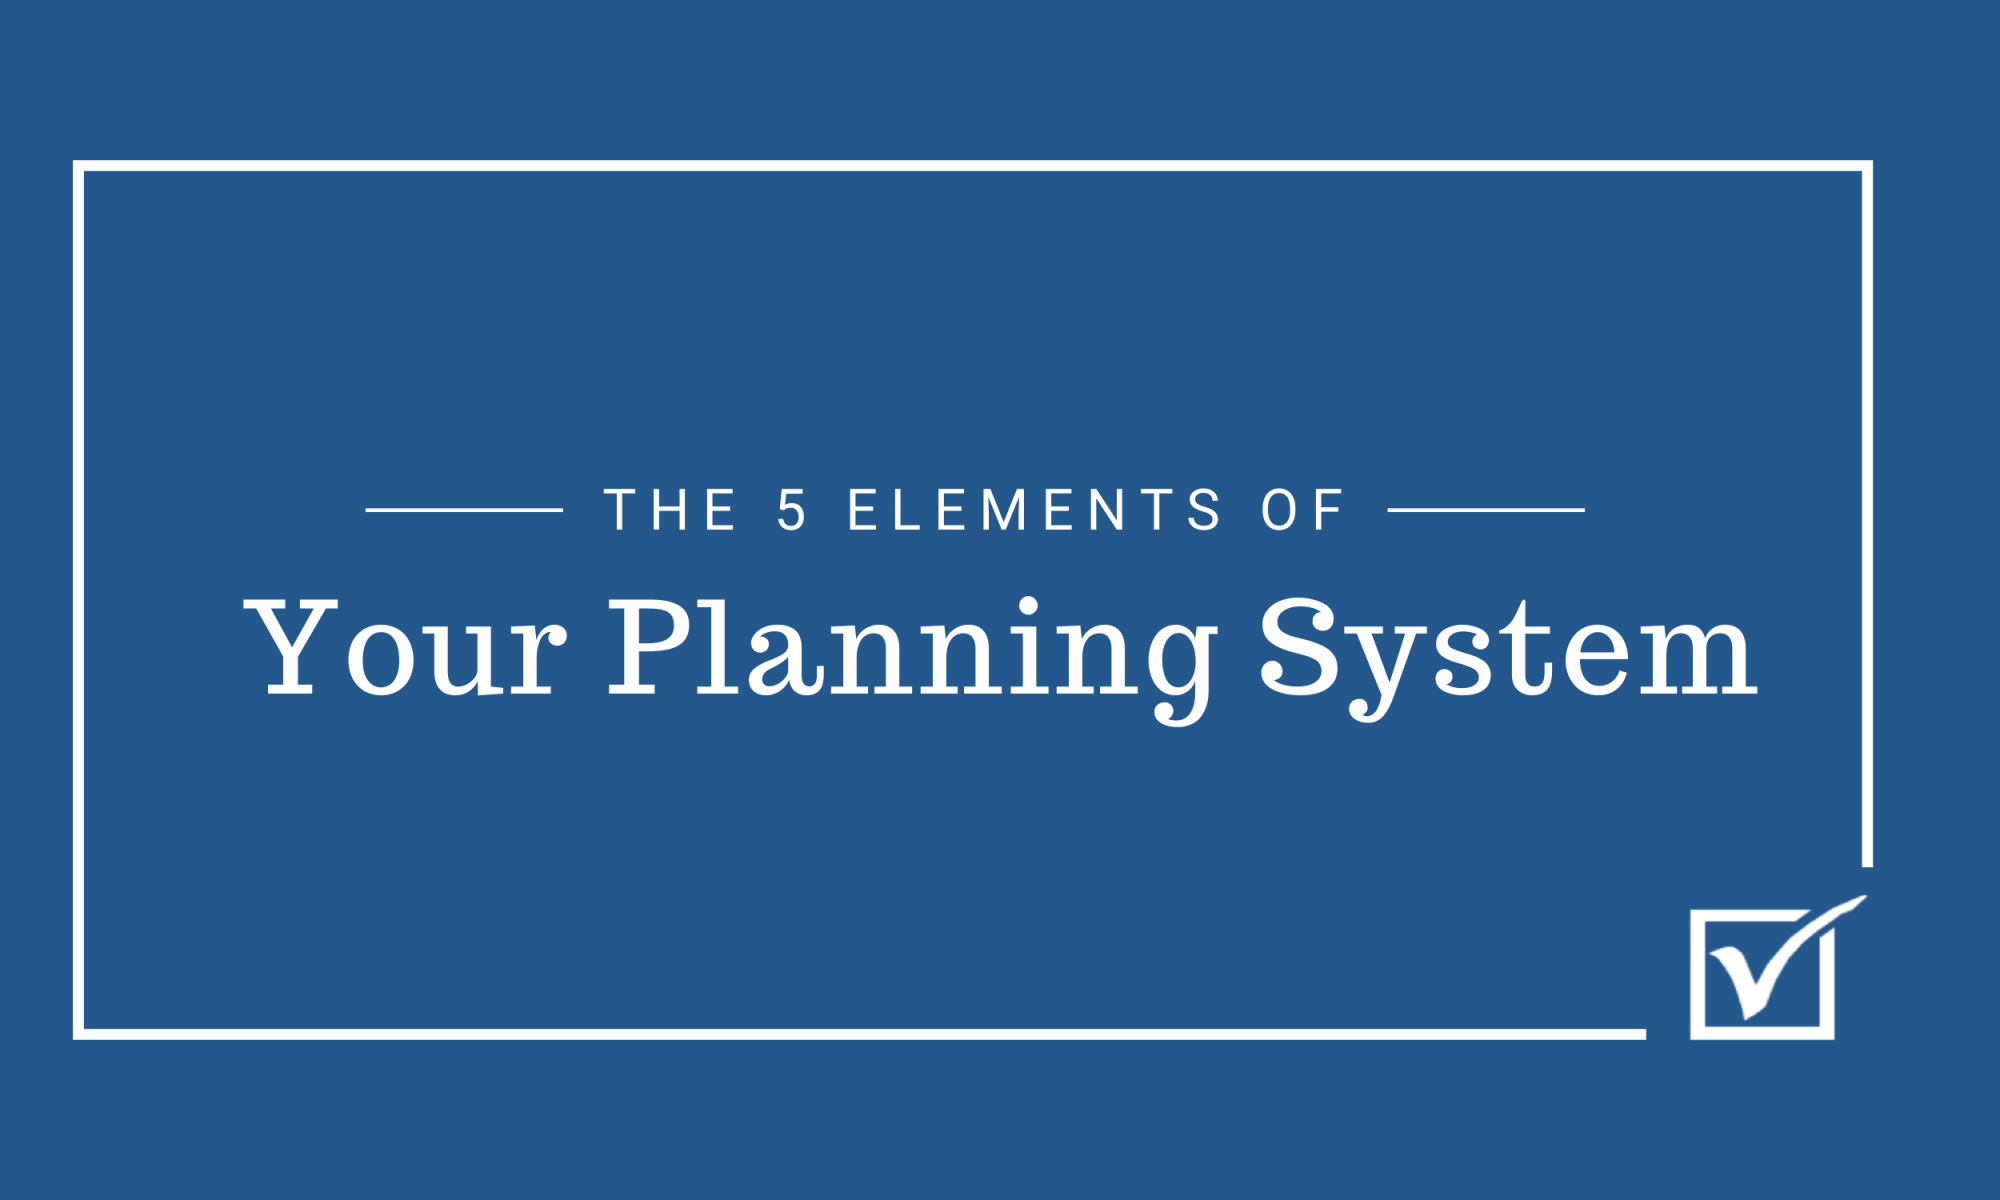 The 5 Elements of Your Planning System